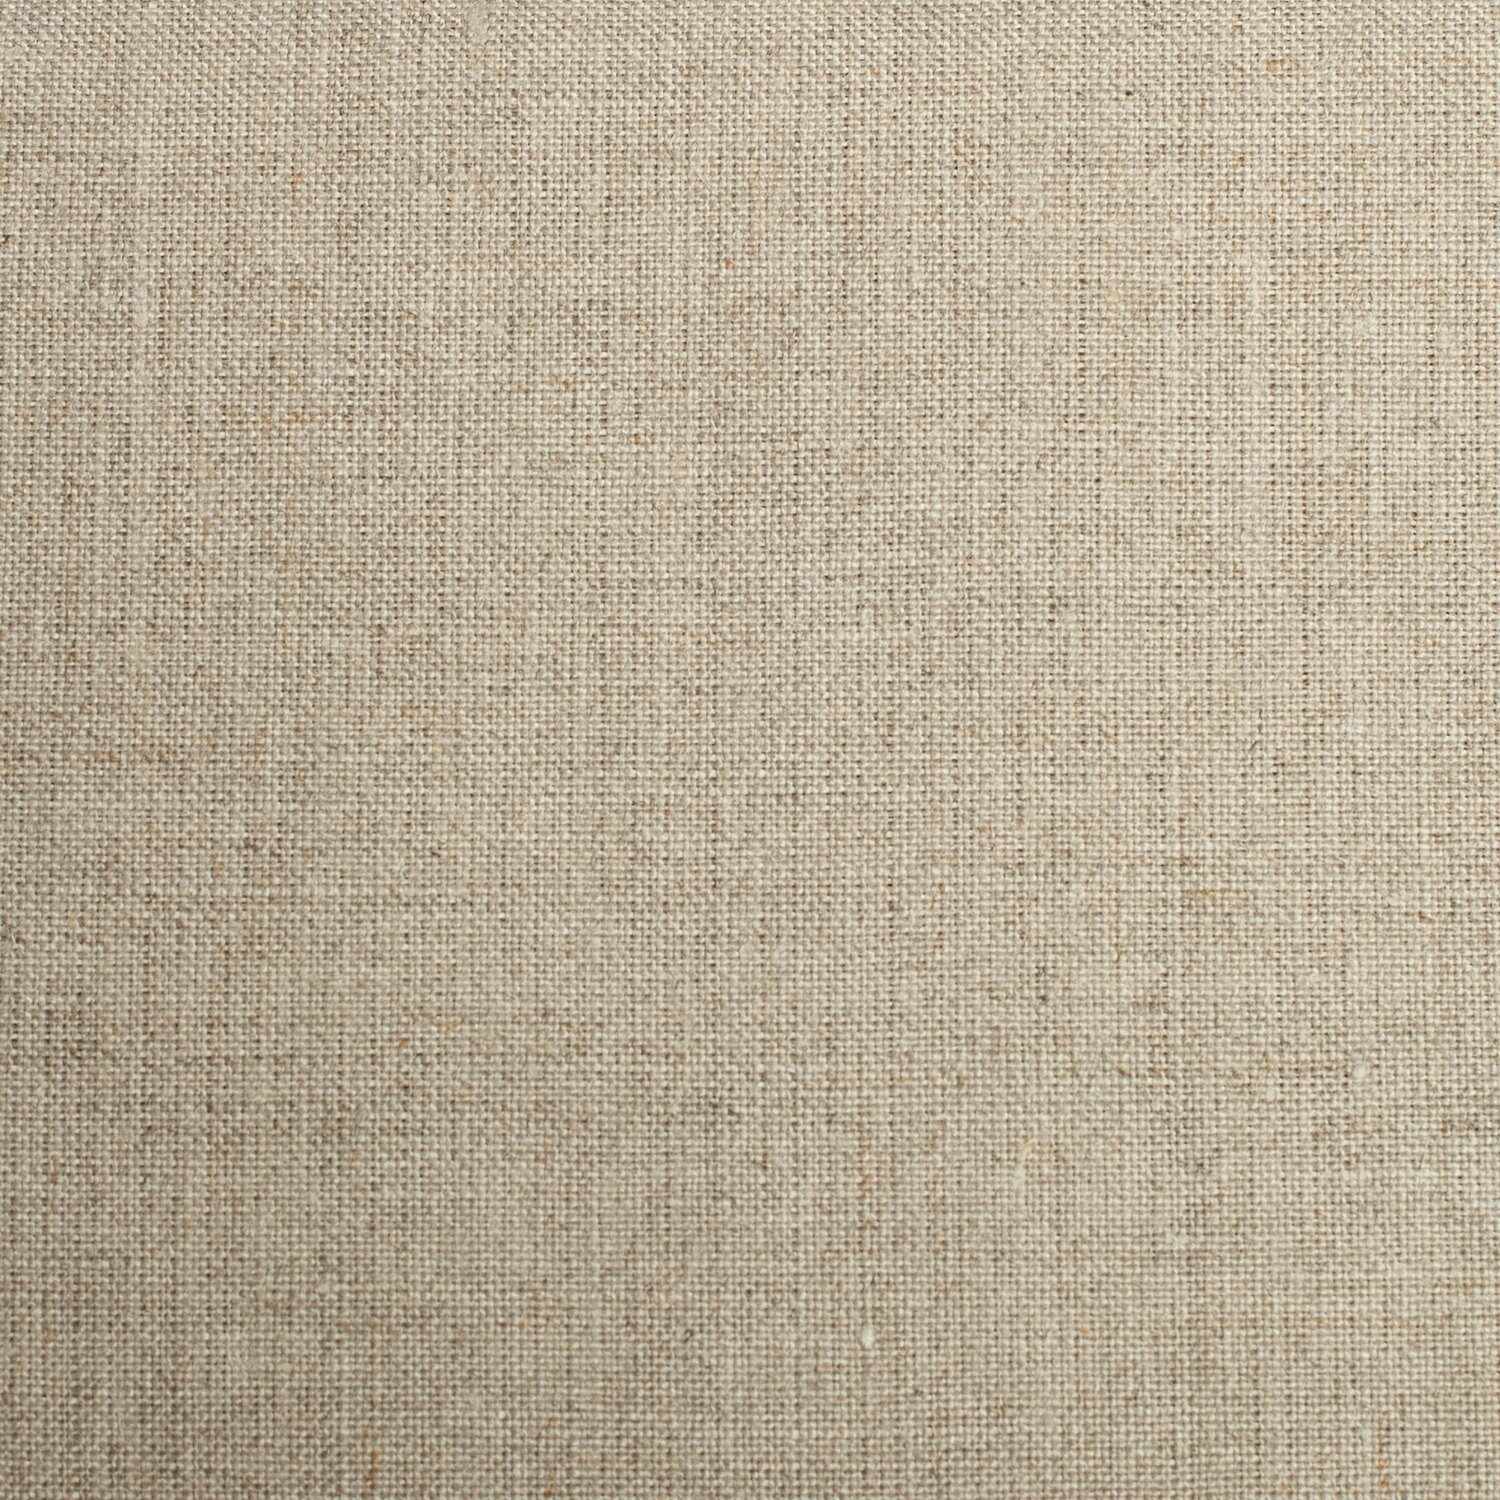 ACLL 45ct Woven Sage